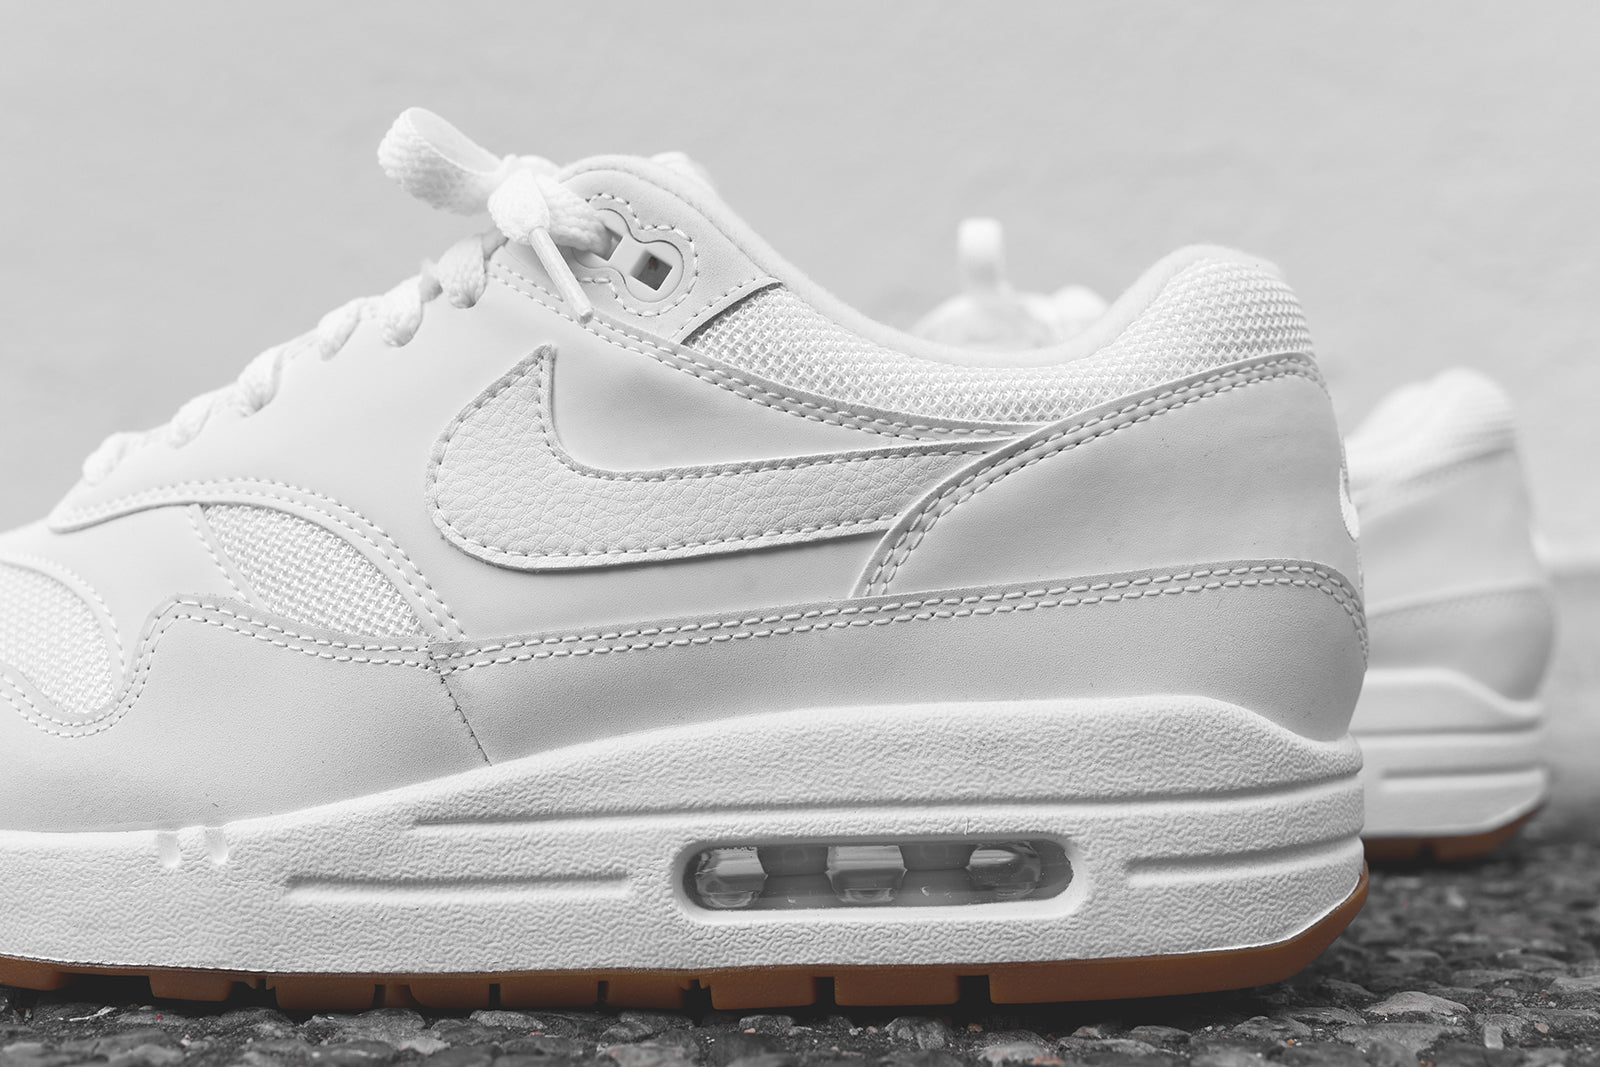 fbc640ef9f3 1  2  3  4. Nike releases the Air Max ...